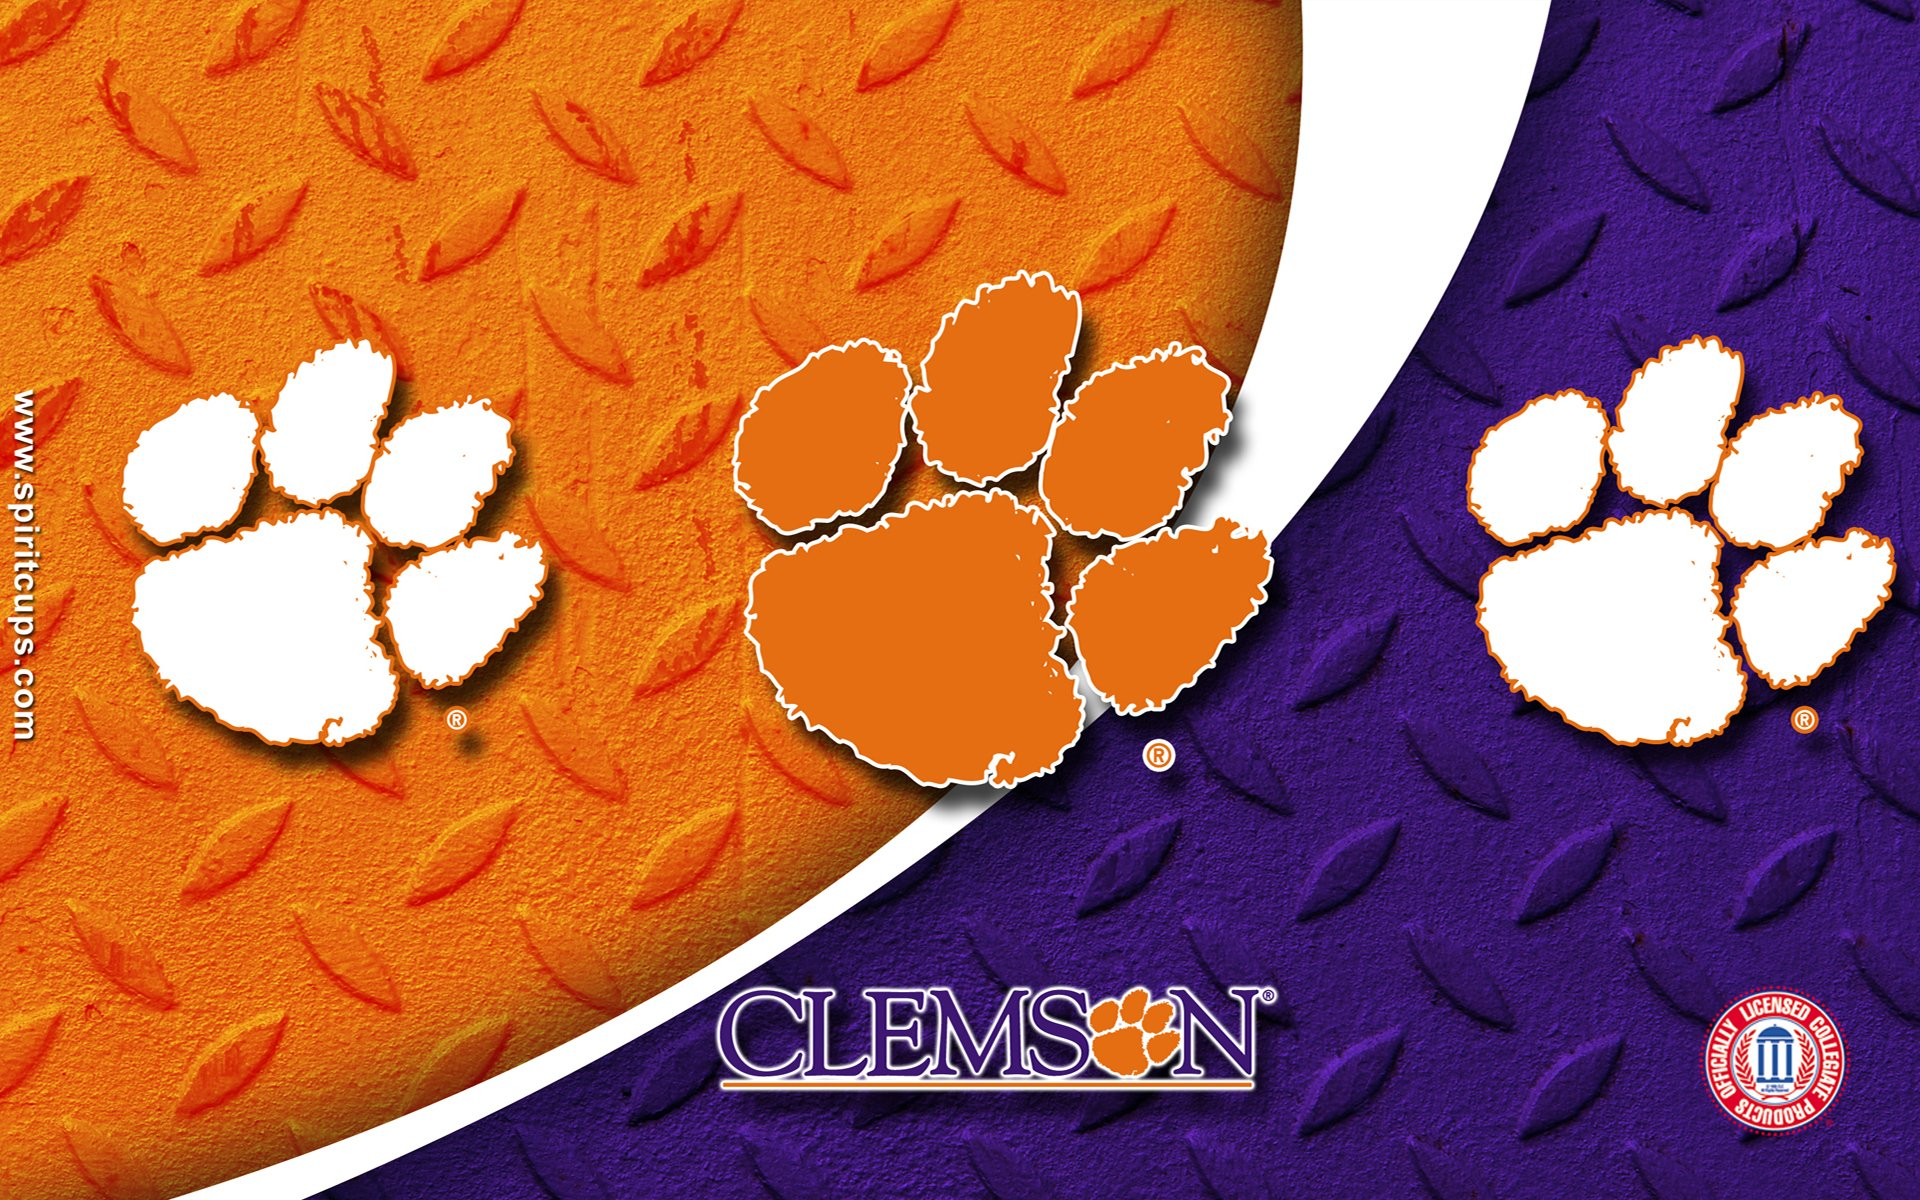 clemson tigers college football wallpaper 1920x1200